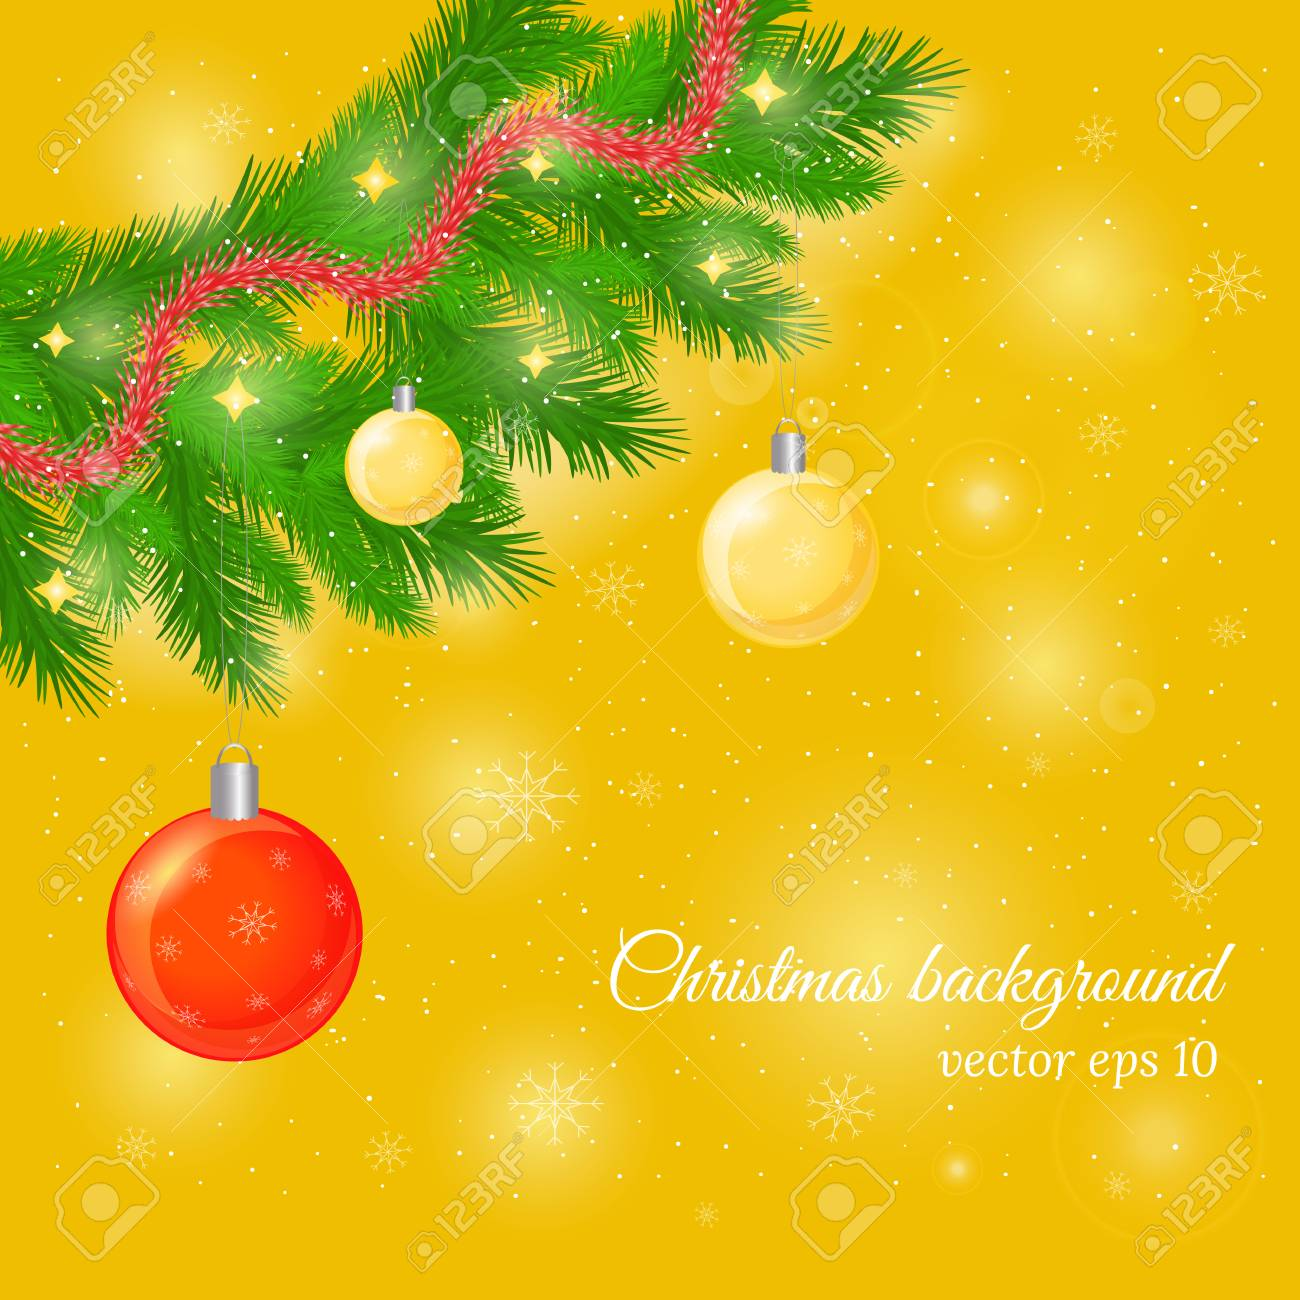 christmas and new year background with pine tree twigs glossy balls and trumpery beautiful